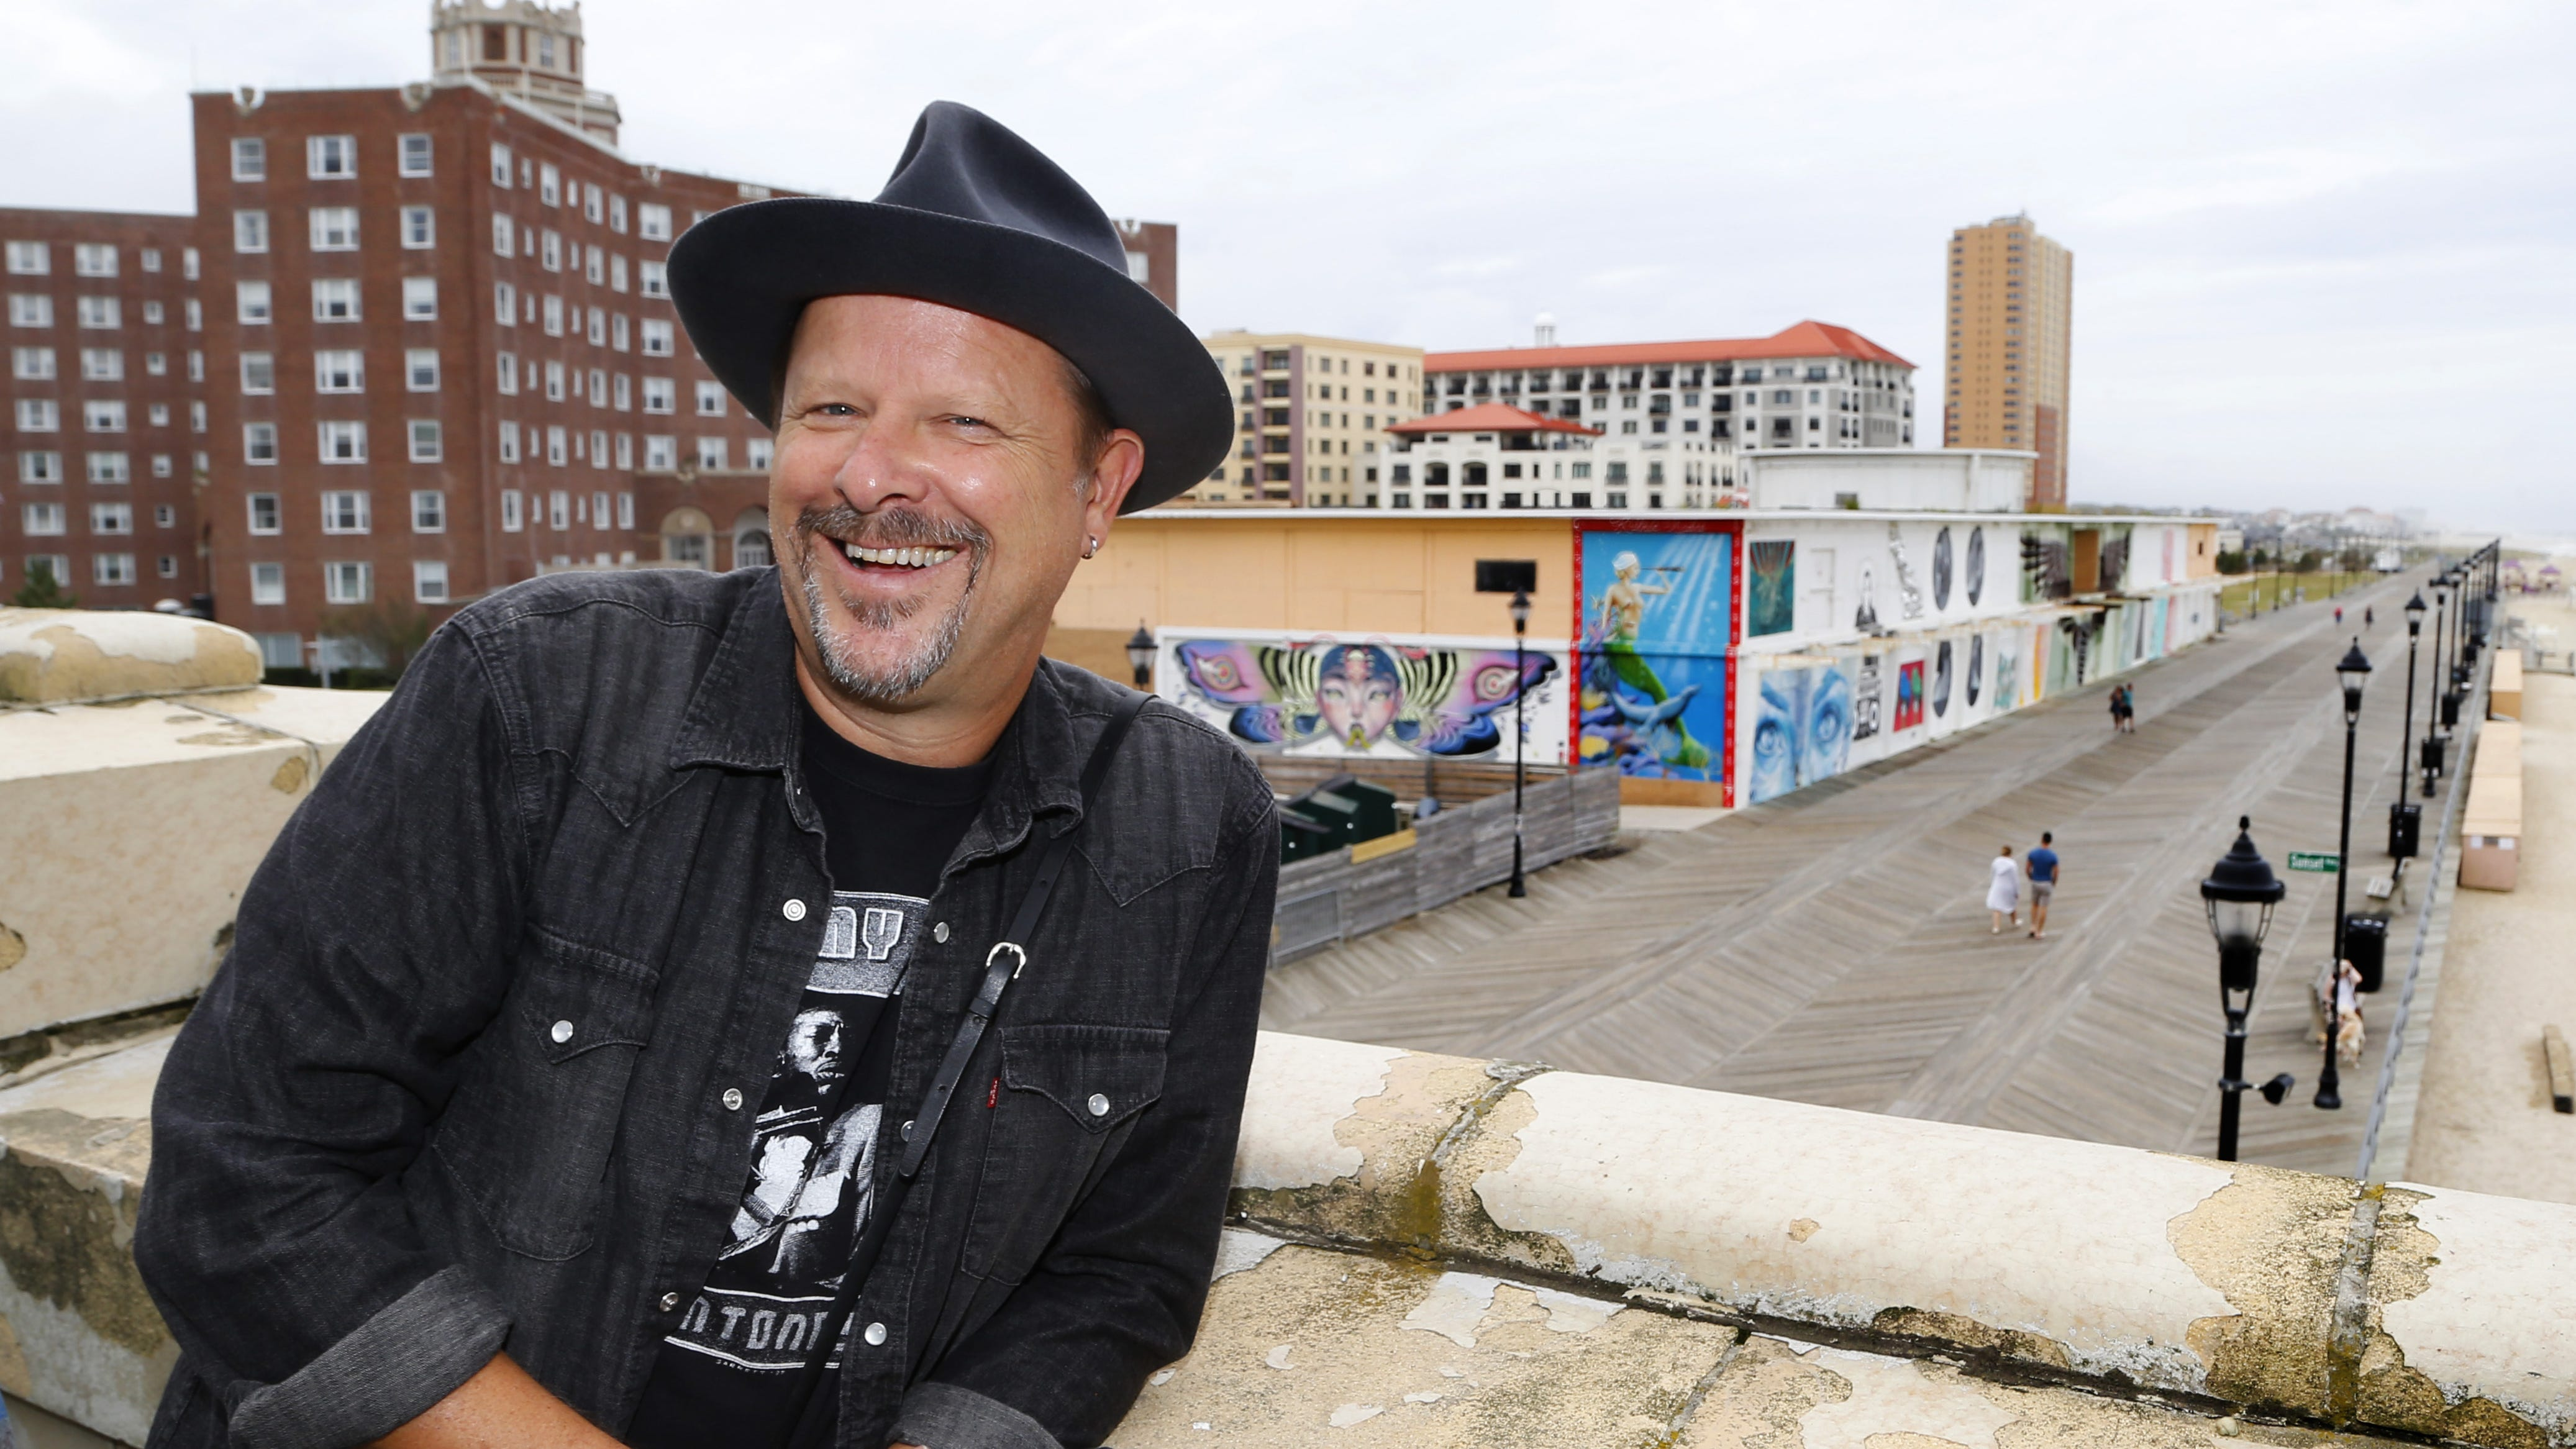 Sea. Hear. Now: Danny Clinch and the return of big beach music festivals to Asbury Park